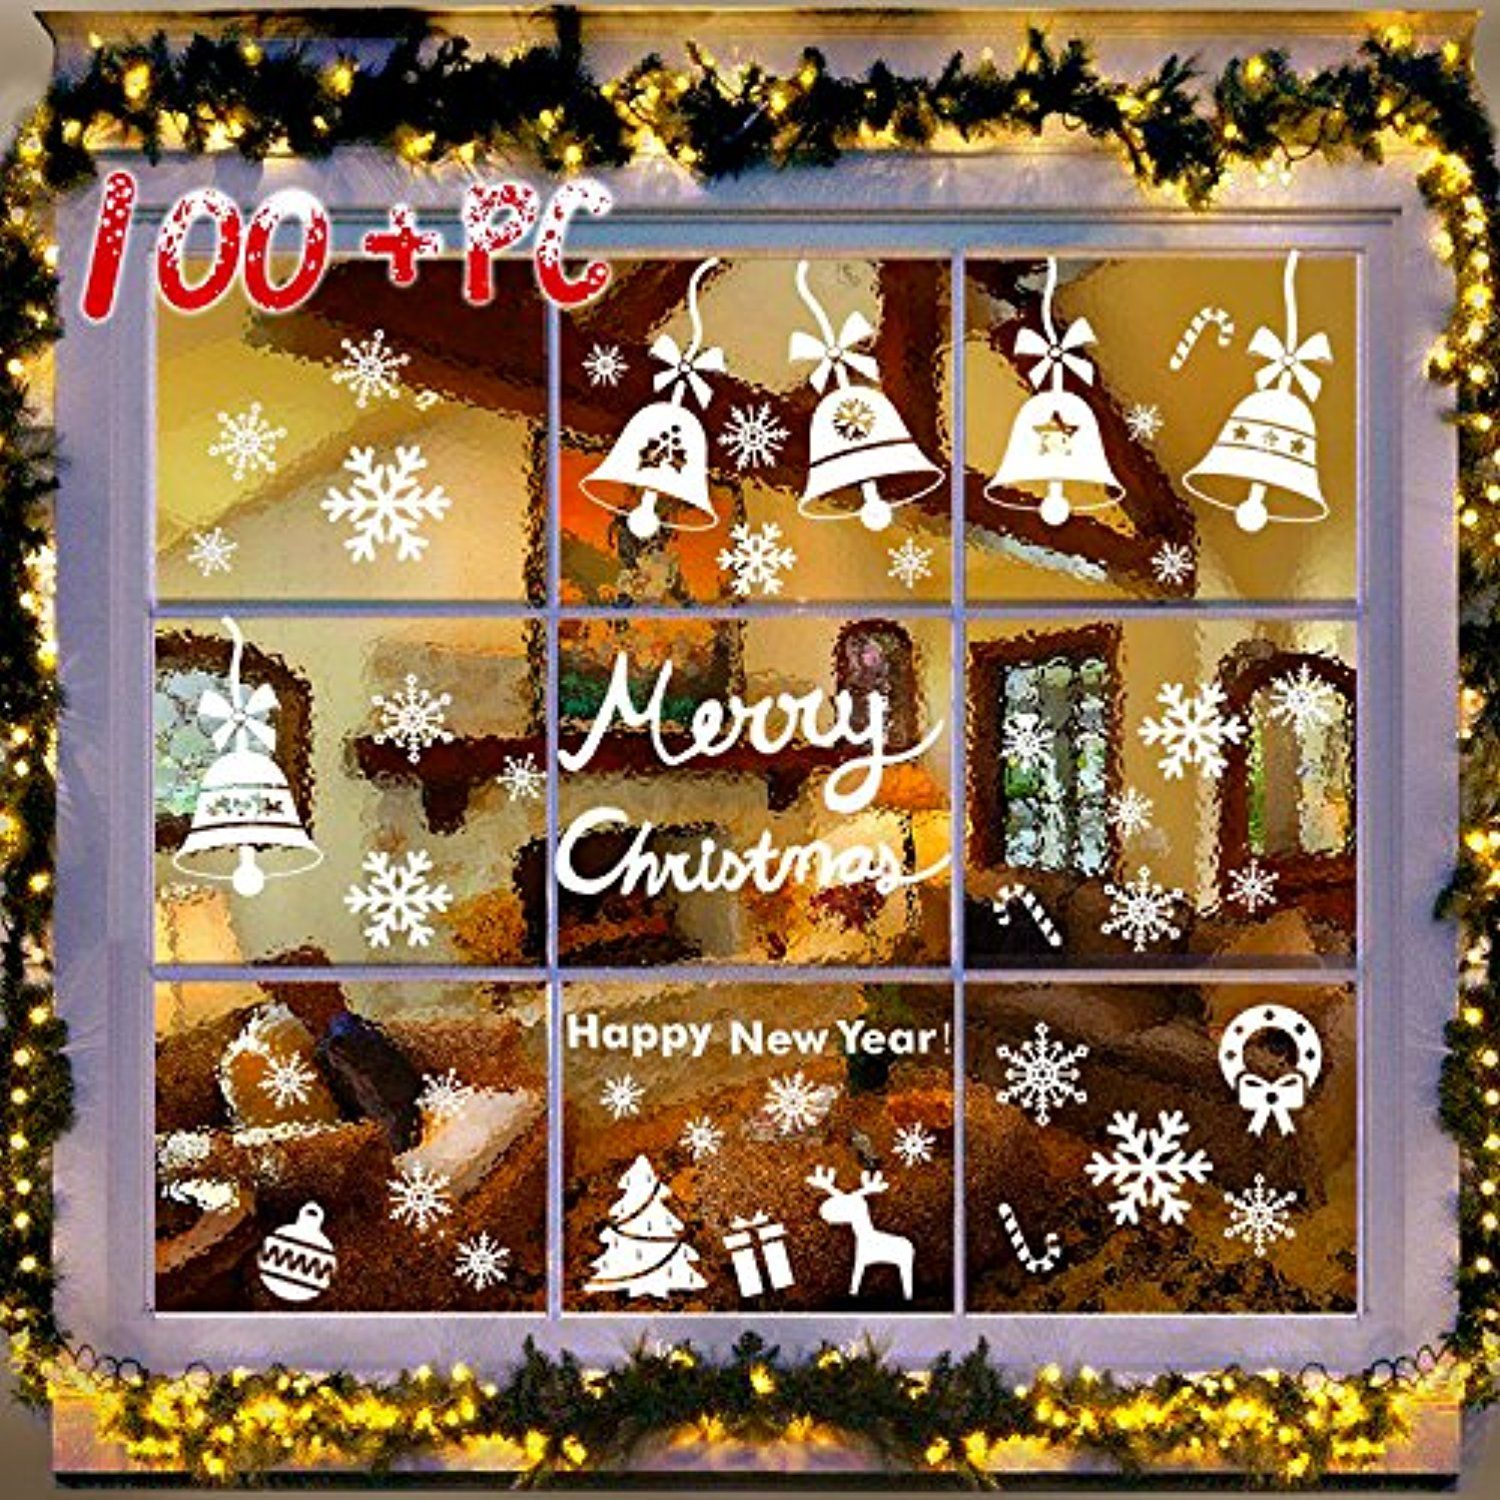 107 Pcs 3 Sheets Snowflakes Window Clings Pvc Winter Decal